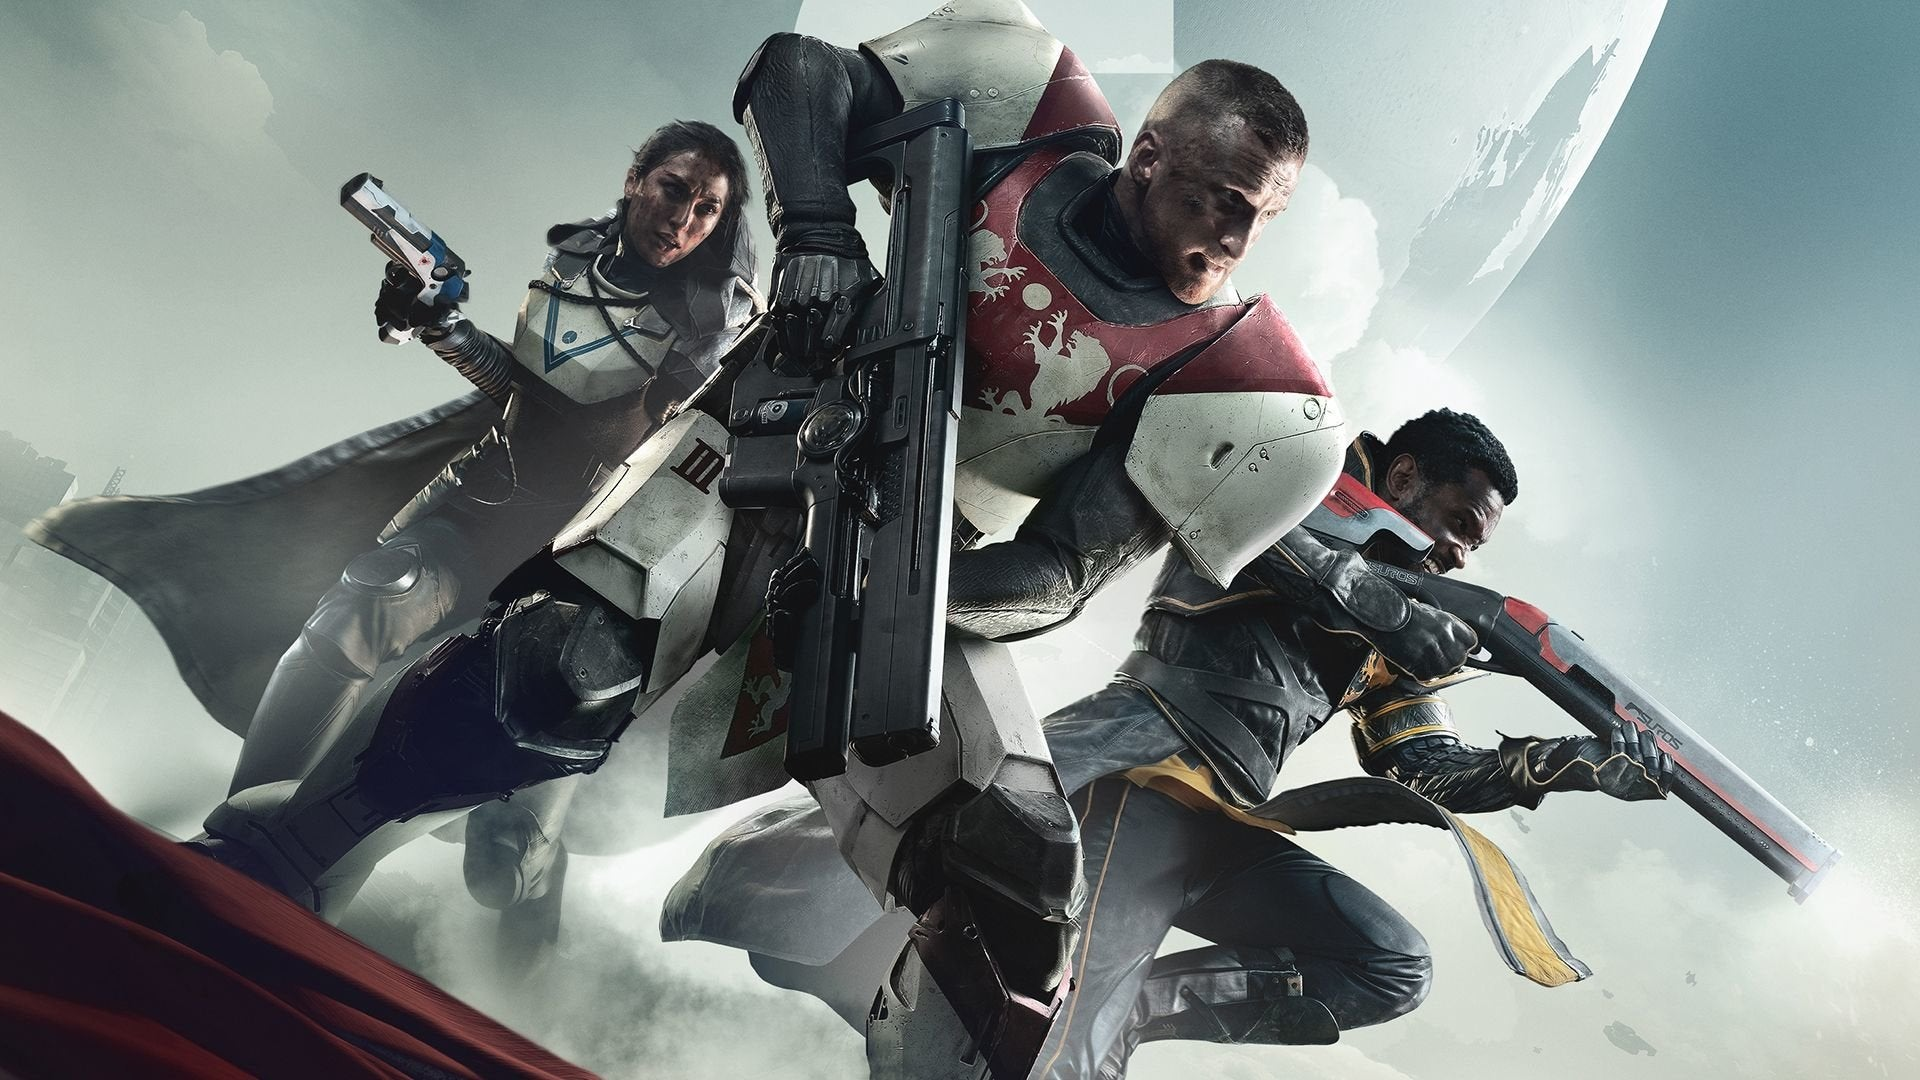 Here's how to download Destiny 2 for free on PC right now | Trusted Reviews